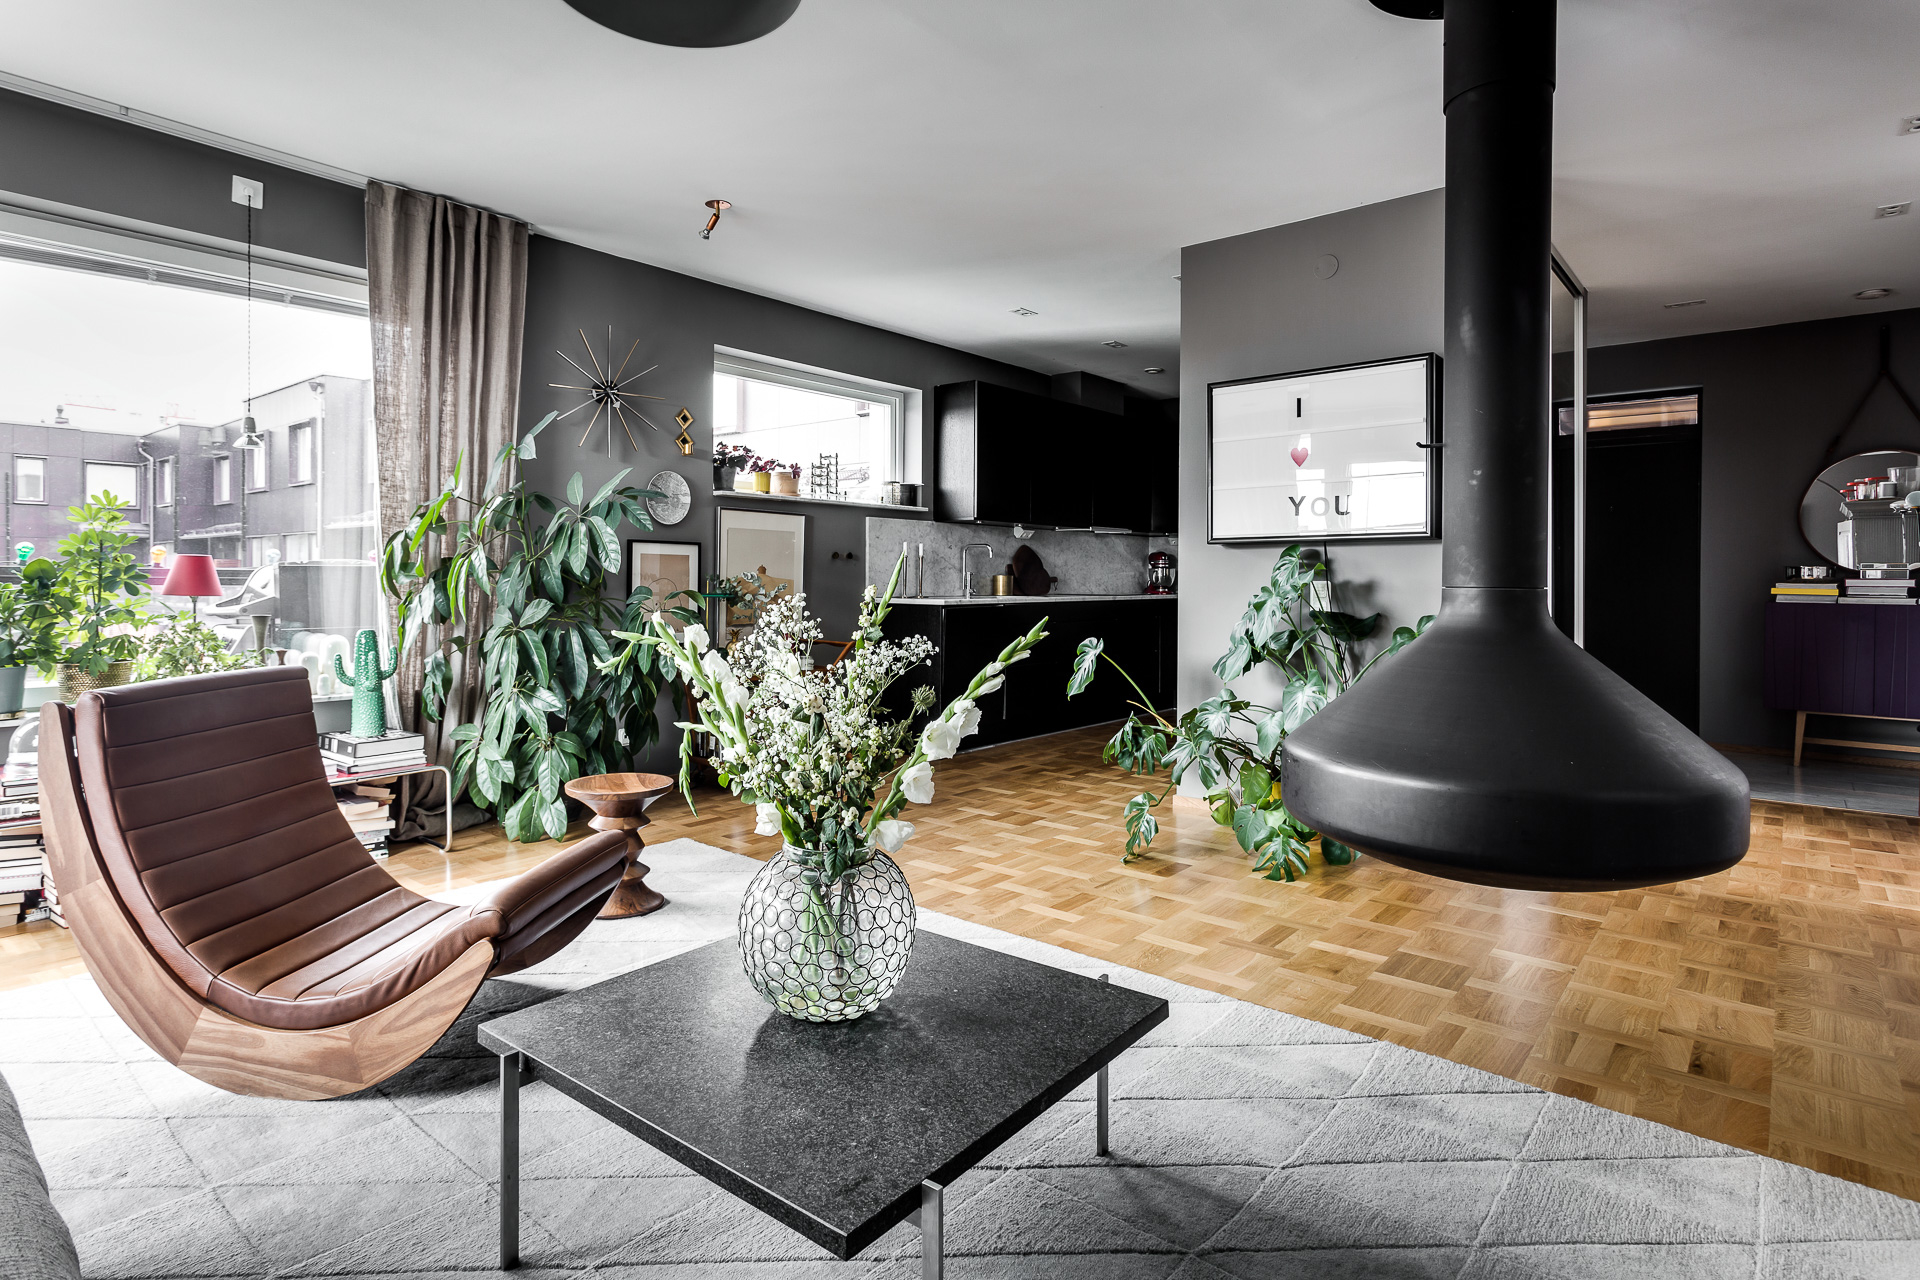 Cheminée design pour appartement gris - PLANETE DECO a homes world